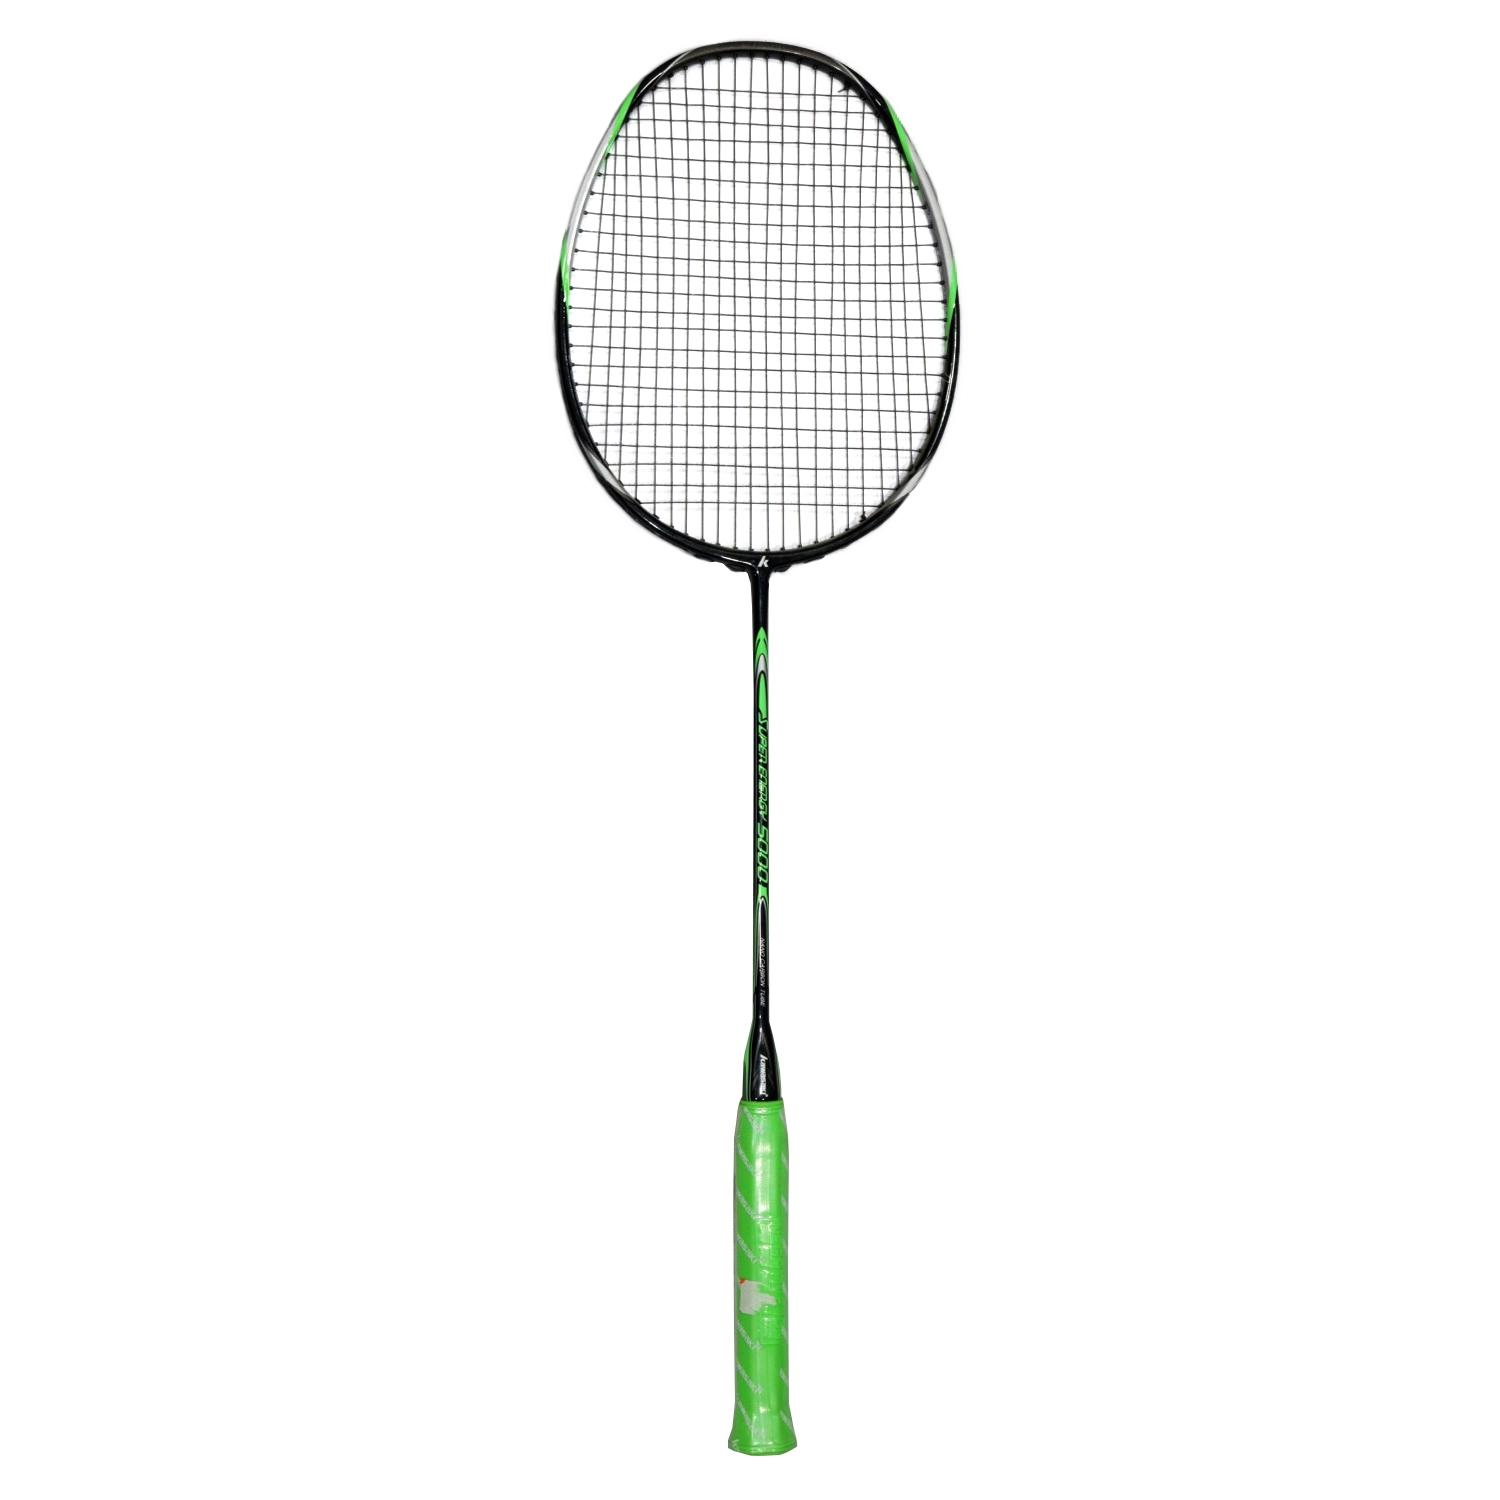 Buy Kawasaki Racquet Sports at Best Prices Online in Nepal - daraz.com.np 643cec3c5fe35